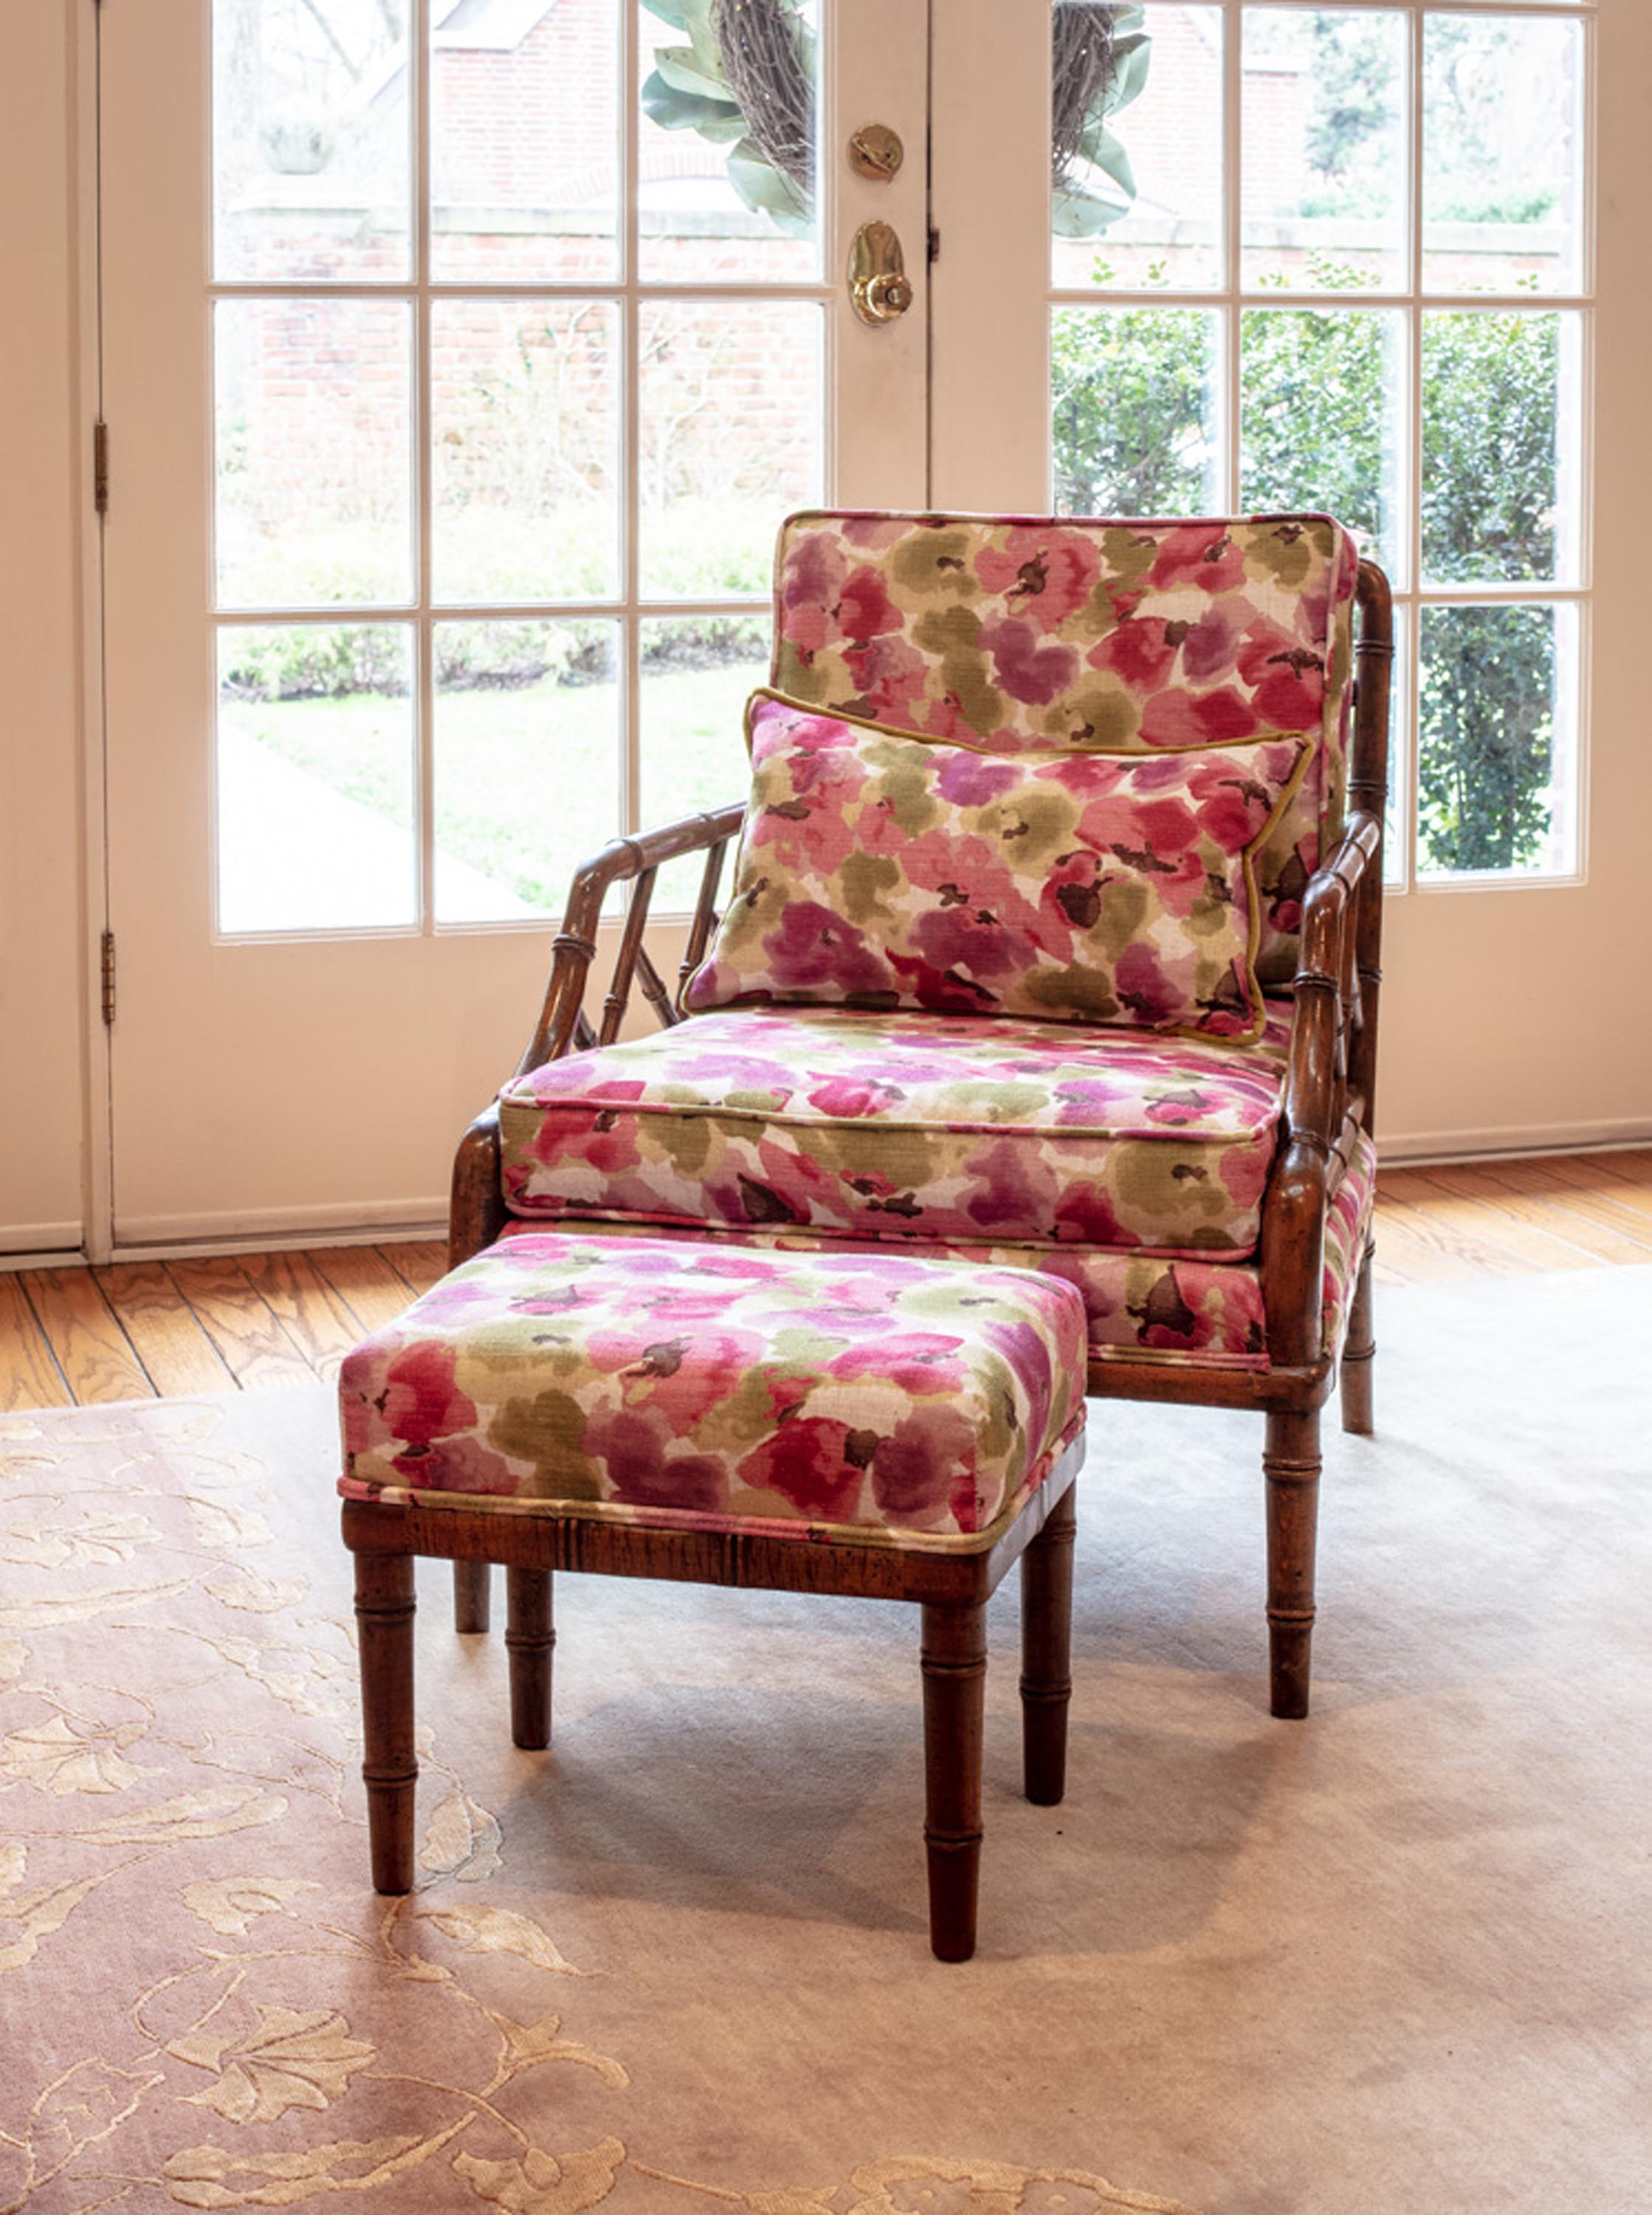 Floral chair and pillow and white wooden door